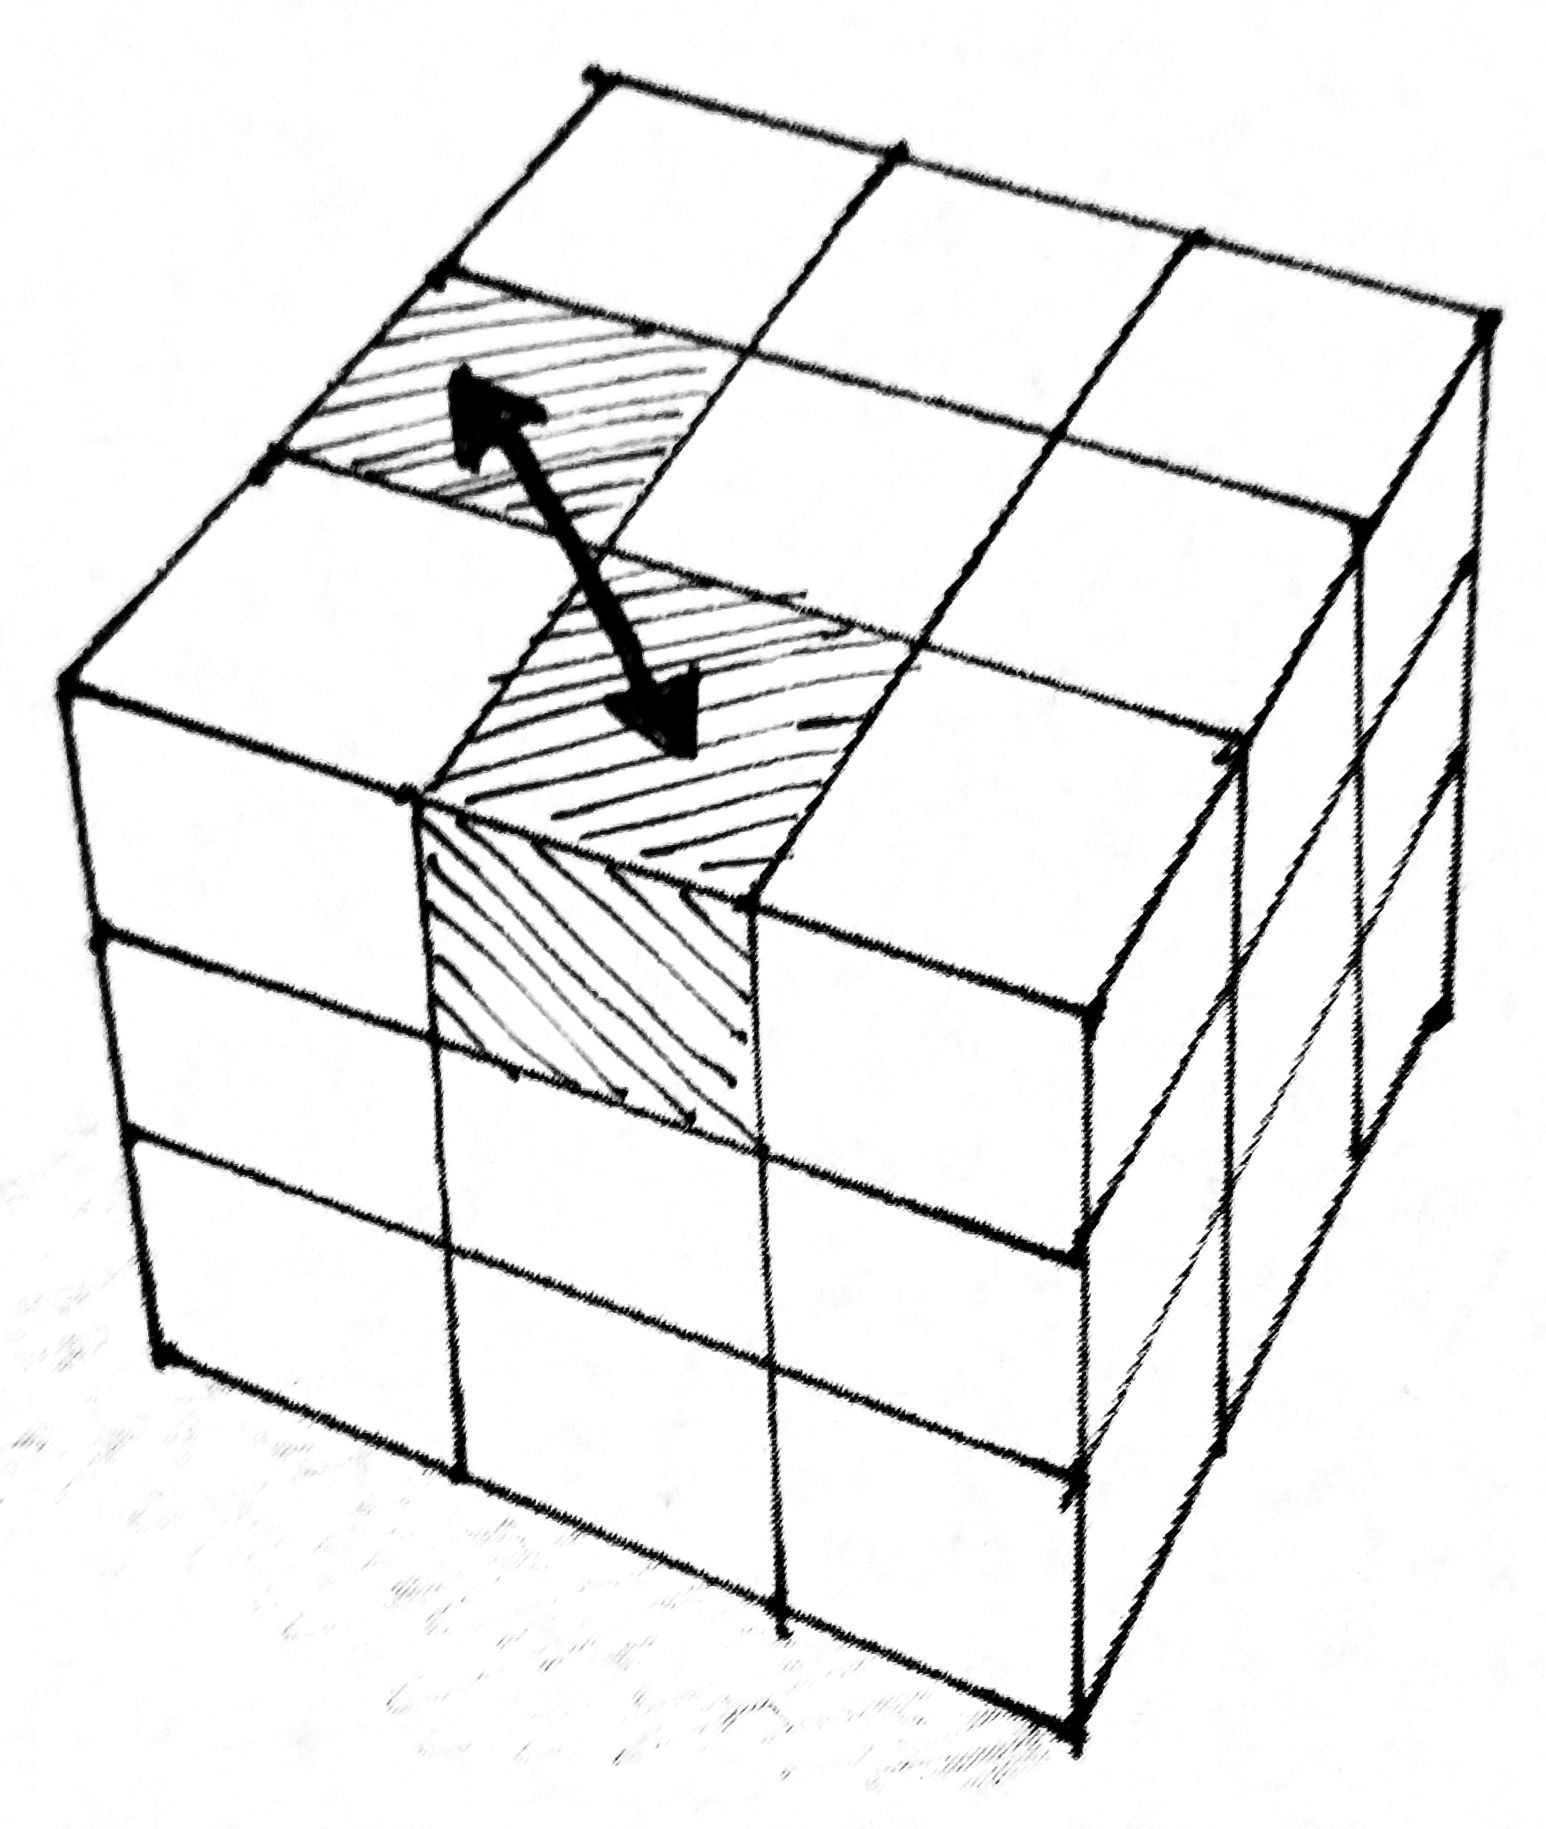 Rubiks Cube Drawing At Getdrawings